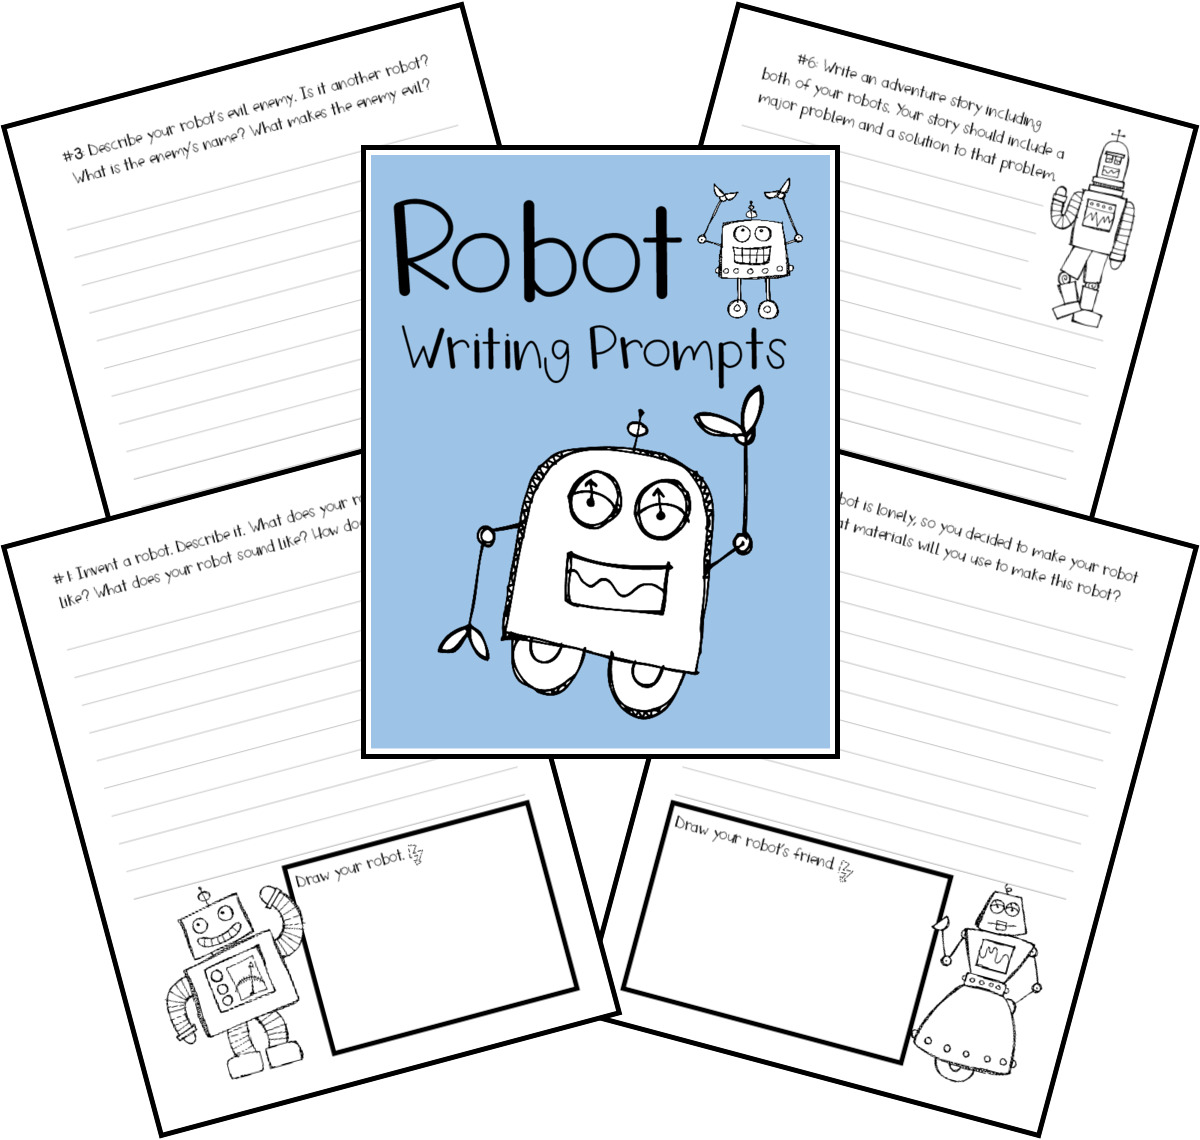 See What Happens When You Try Fun Creative Robot Writing Prompts